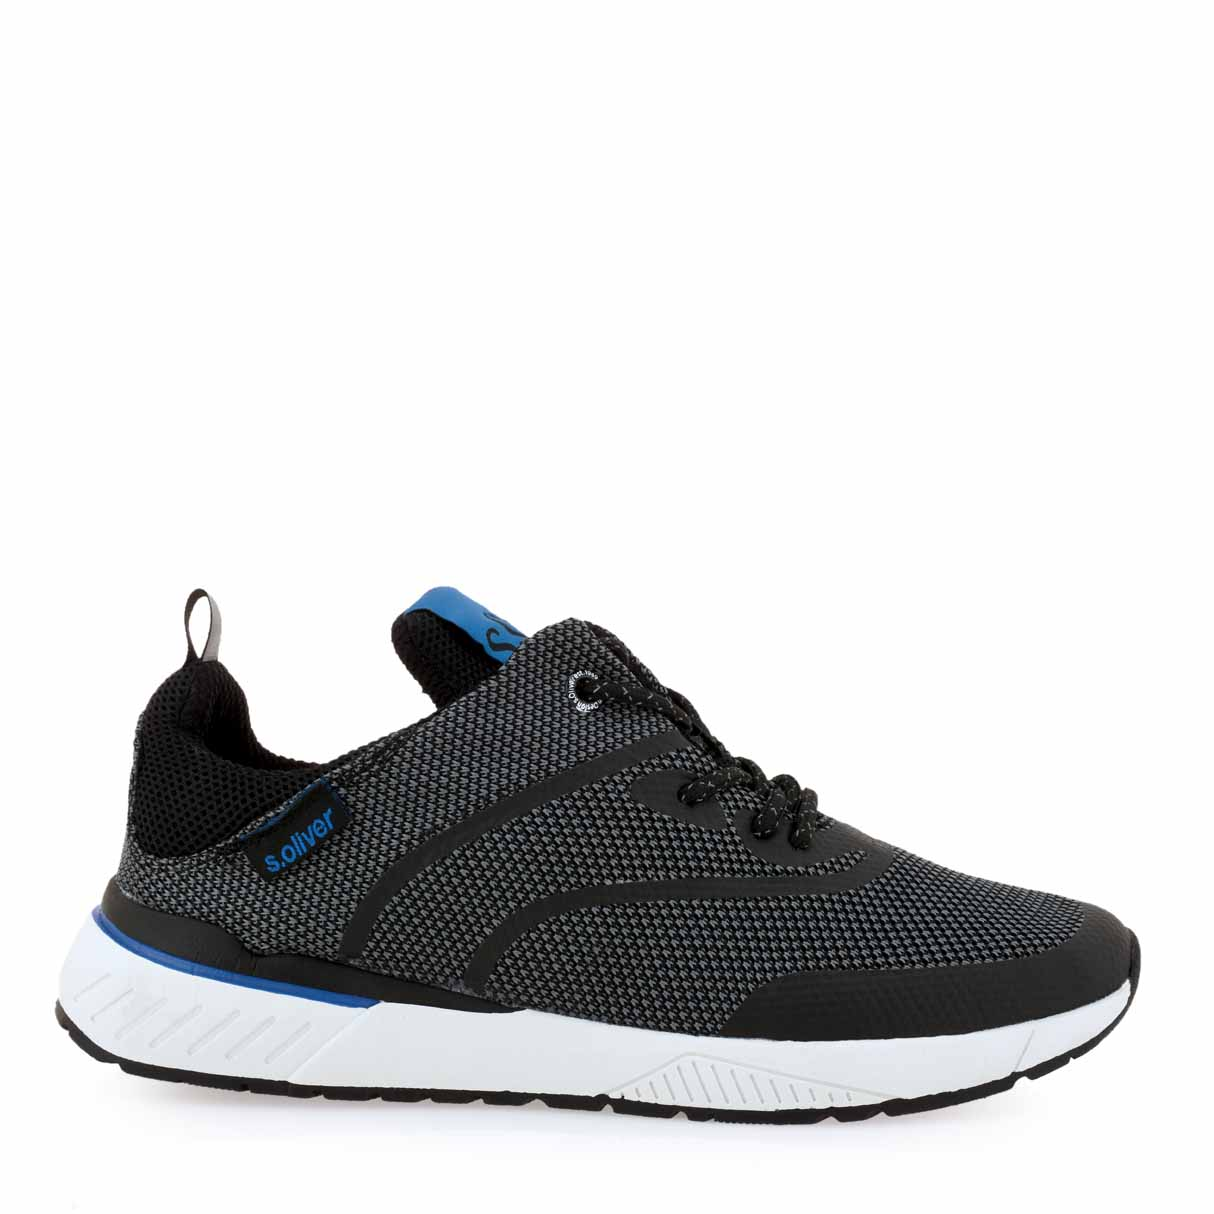 S OLIVER SNEAKERS I593S6072 - ΜΑΥΡΟ  f8ea56986eb